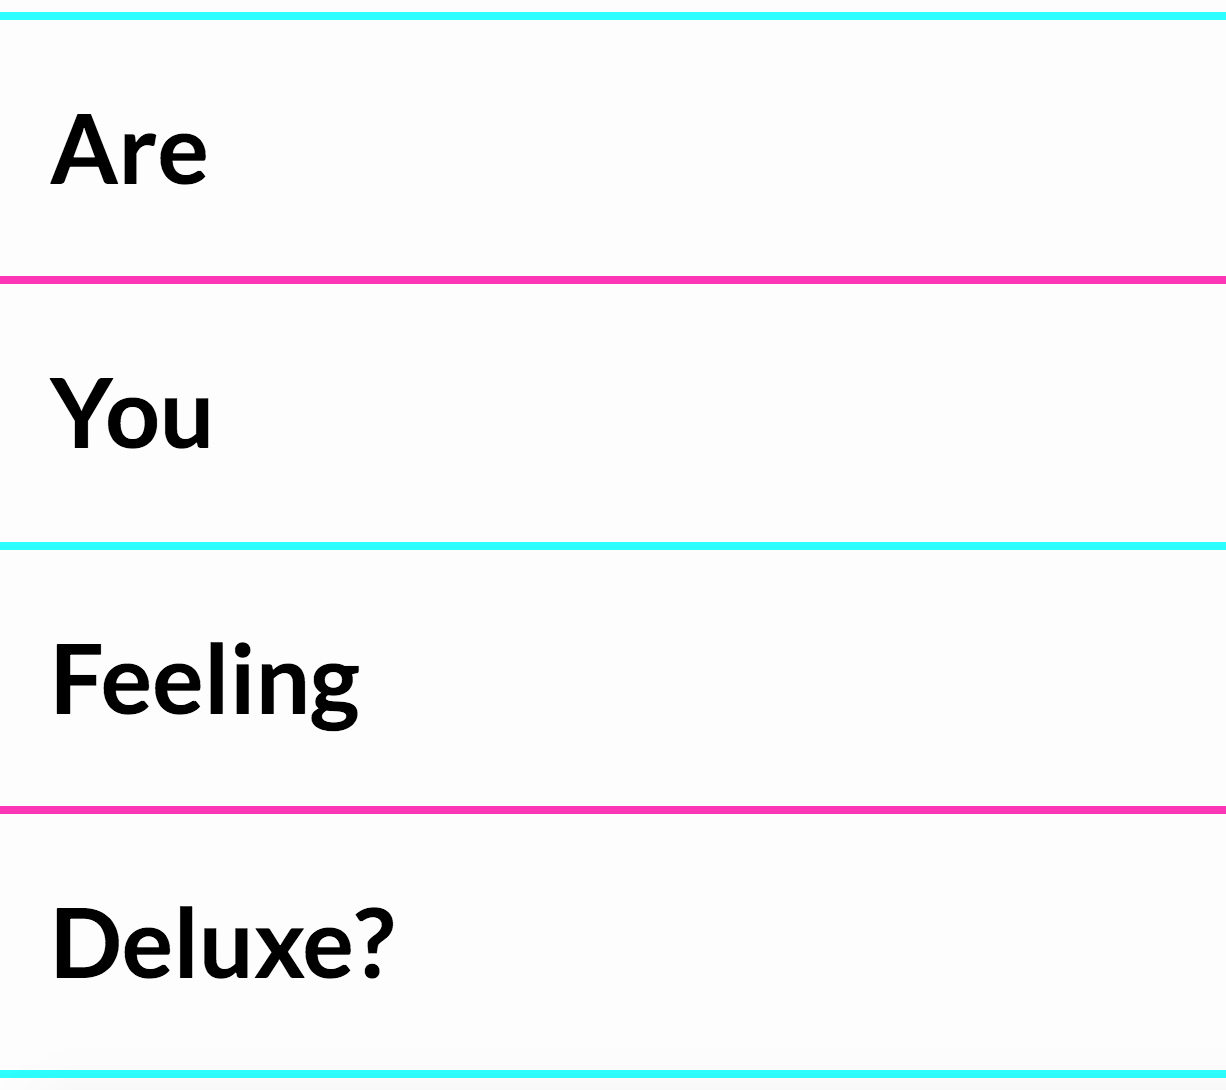 Are You Feeling Deluxe?